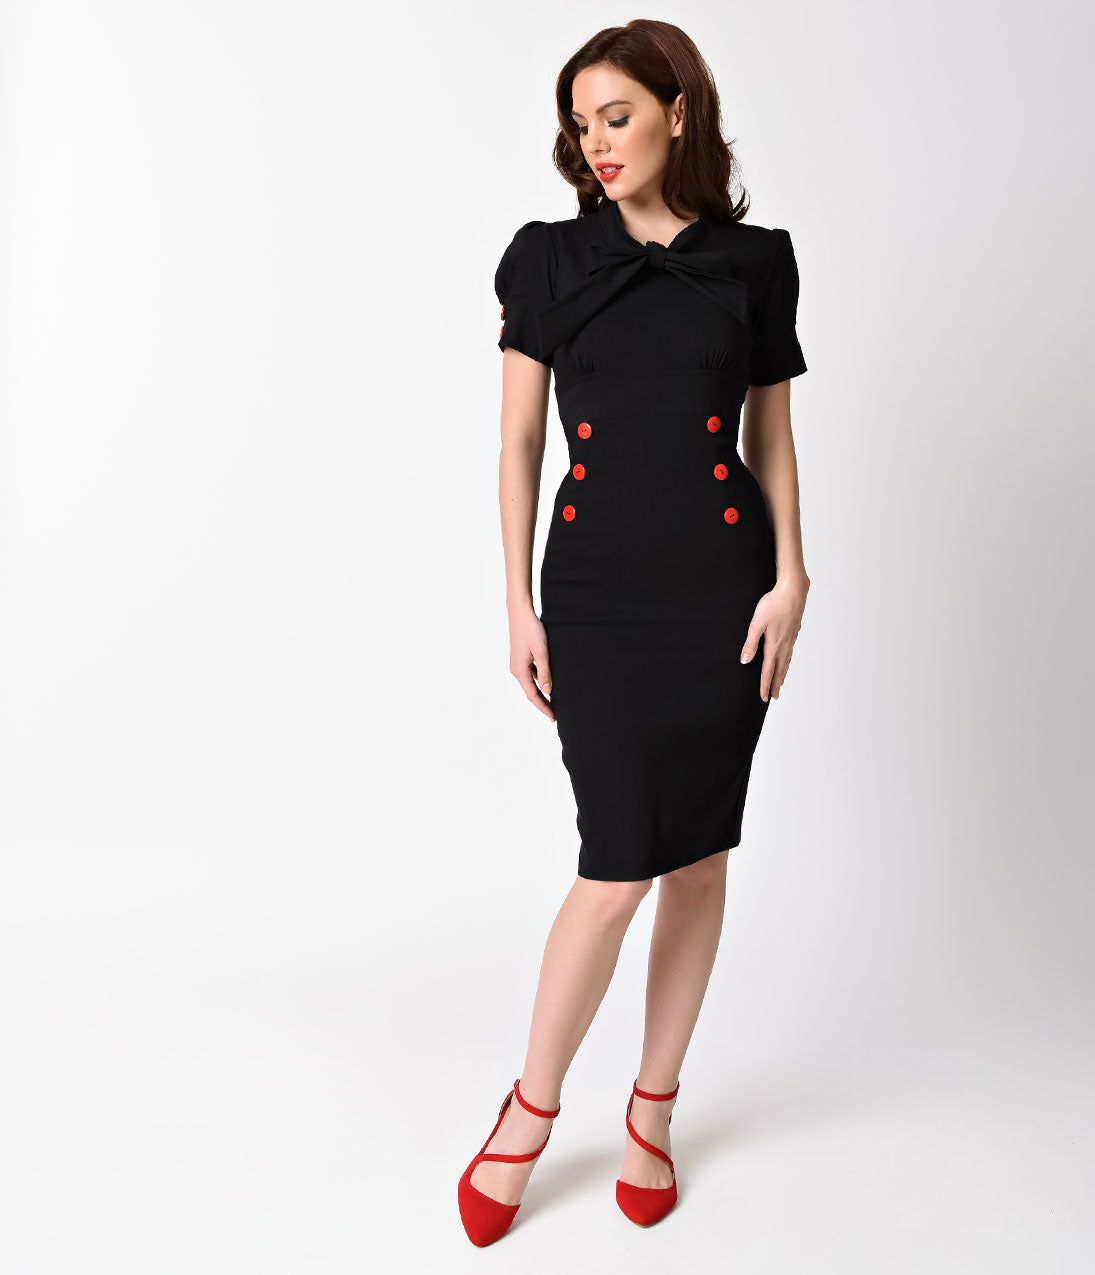 Wiggle Dresses | Pencil Dresses 40s, 50s, 60s 1950S Style Black Stretch Short Puff Sleeve Collar Tie Wiggle Dress $62.00 AT vintagedancer.com